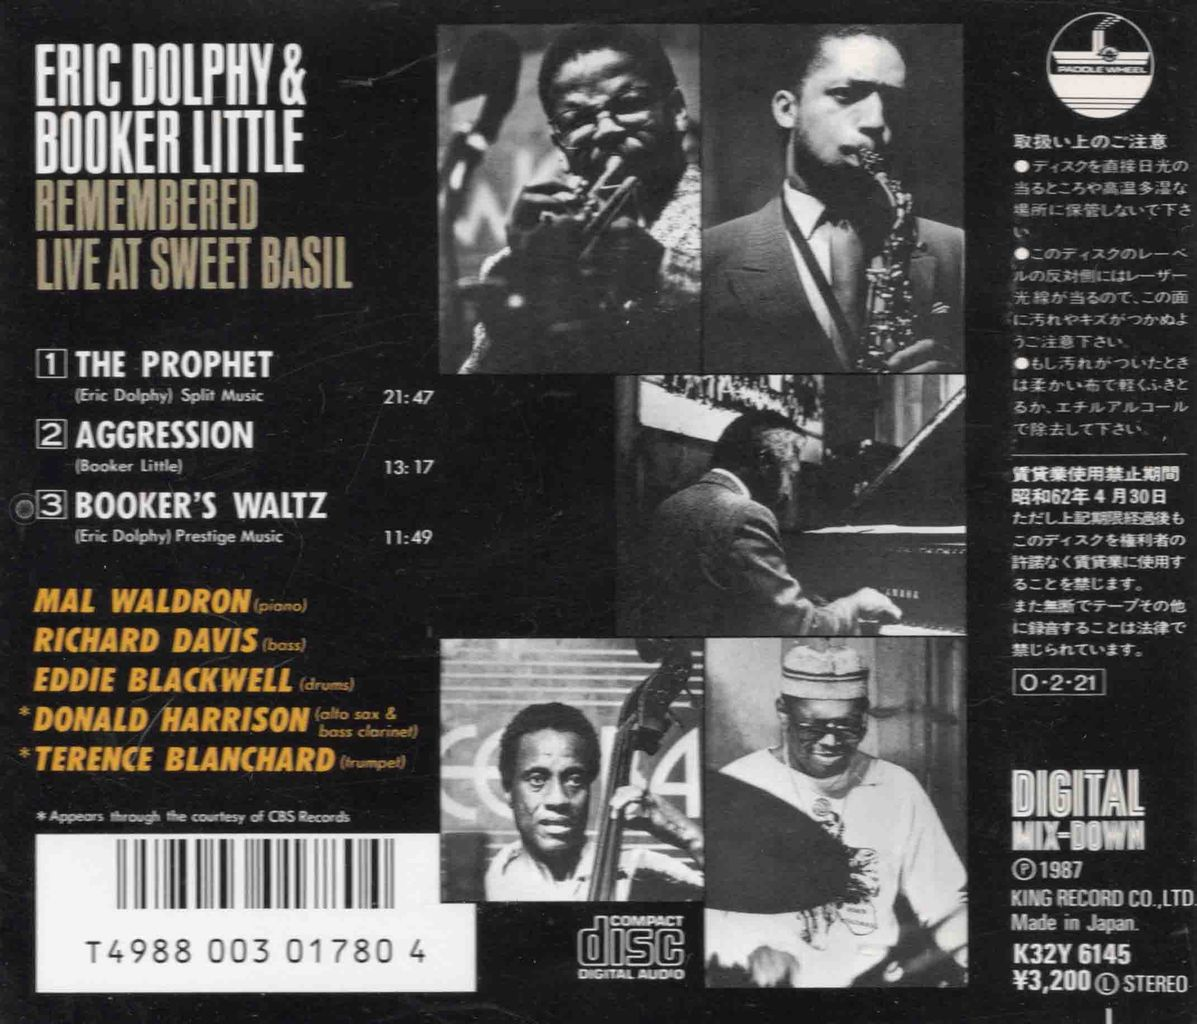 ERIC DOLPHY & BOOKER LITTLE REMEMBERED LIVE AT SWEET BASIL-2